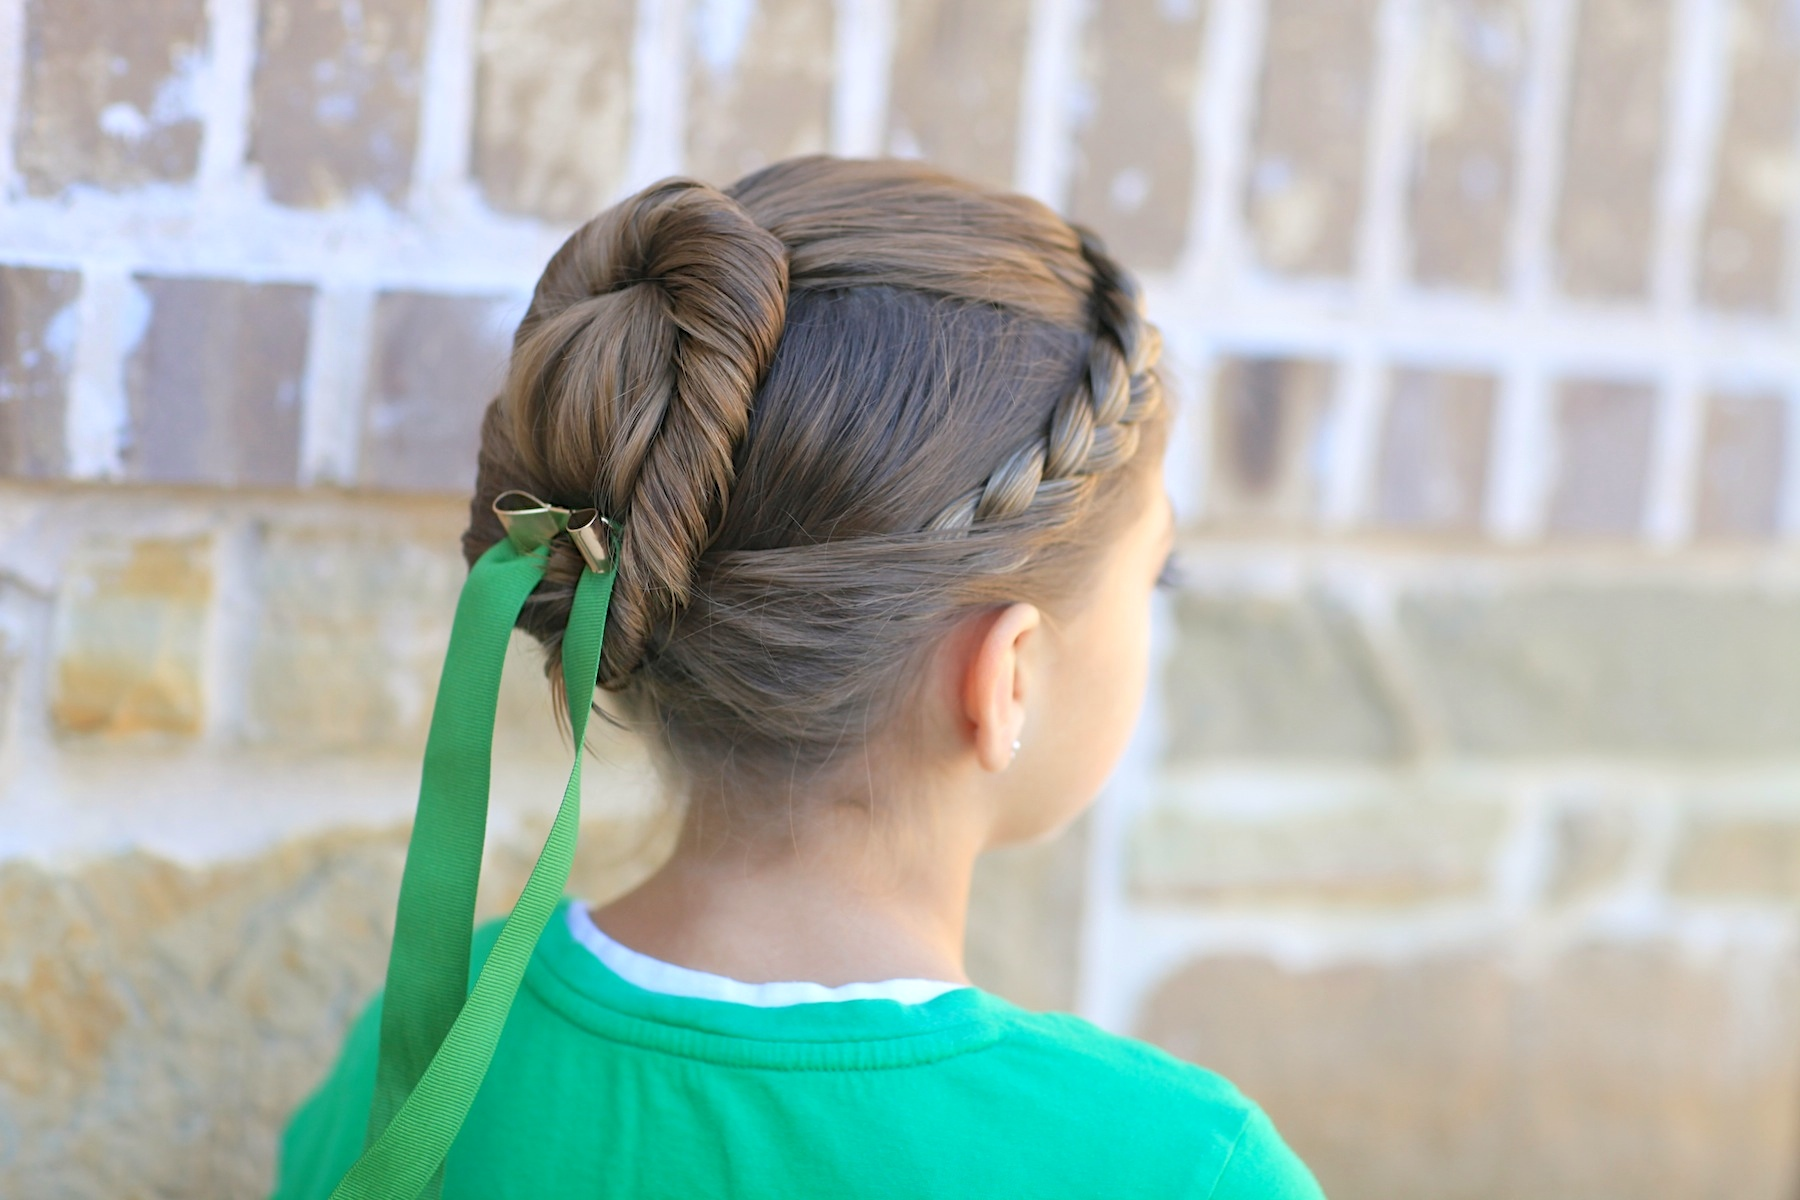 Anna S Coronation Hairstyle Inspired By Disney S Frozen Cute Girls Hairstyles